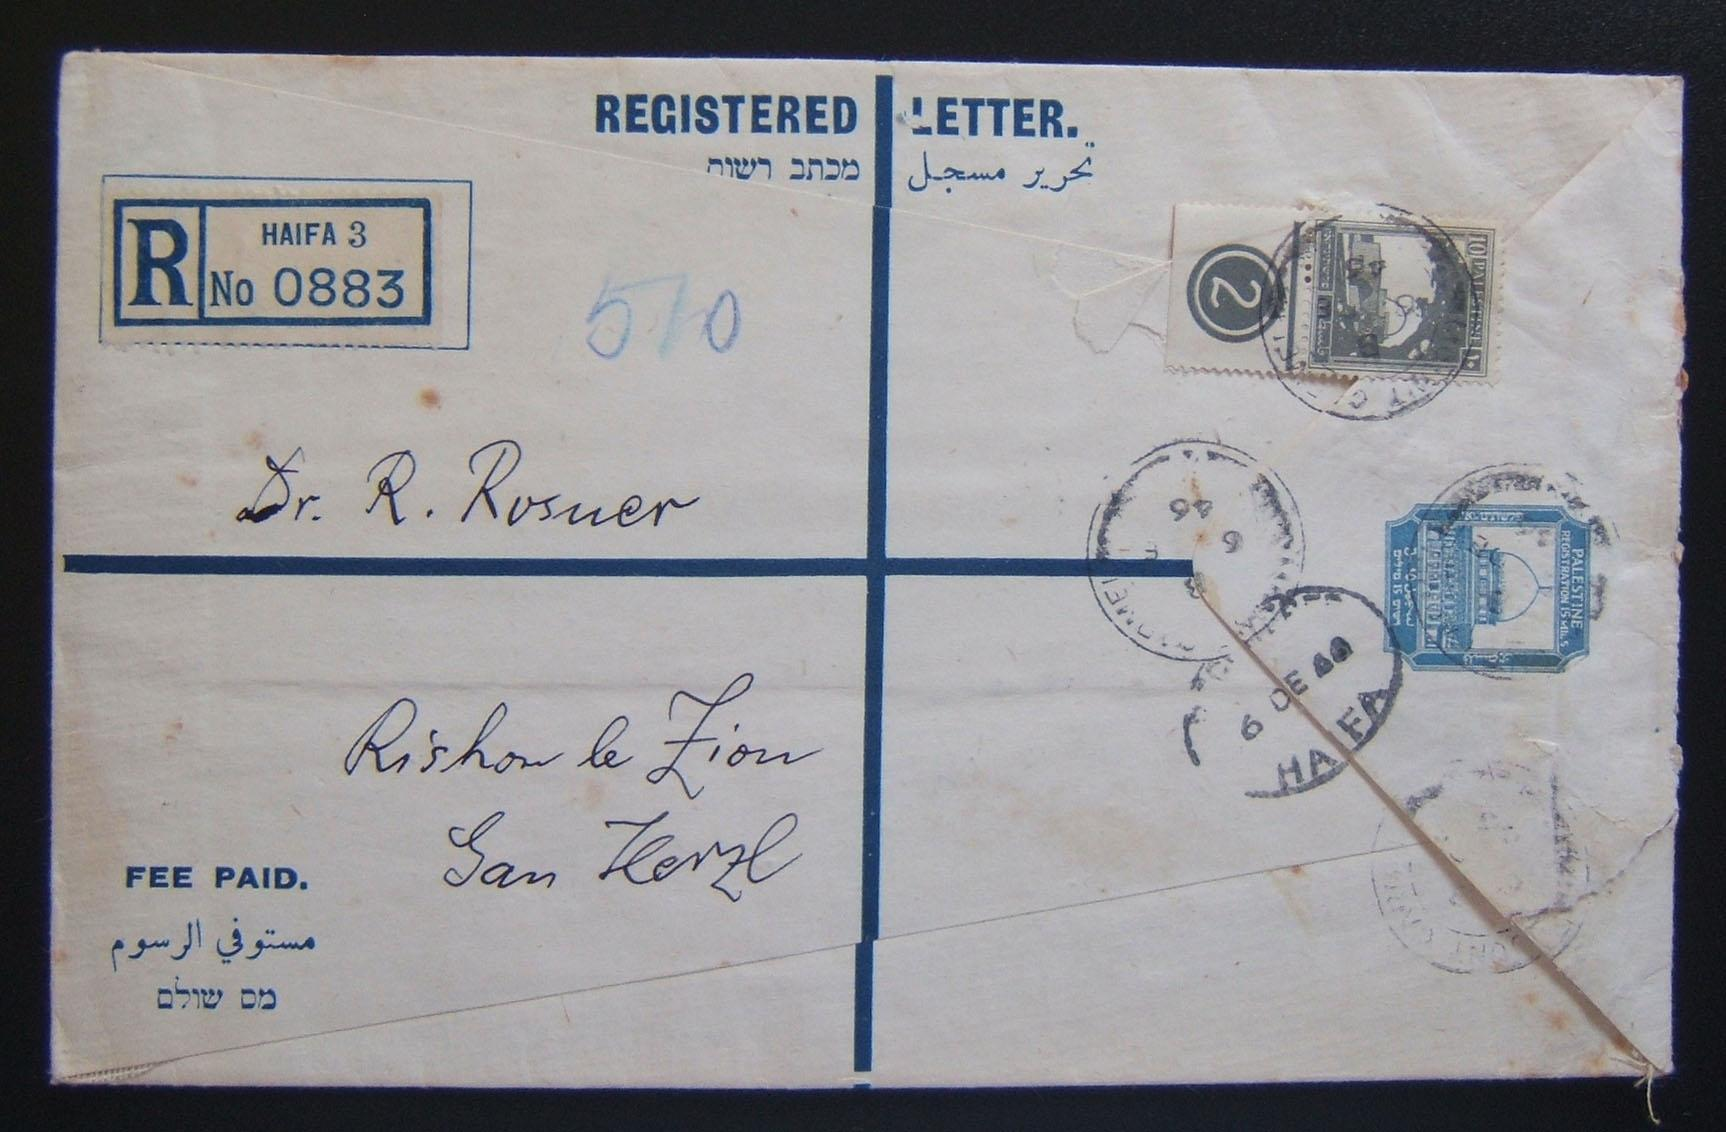 1945 medium Mandate stationary Registered Envelope pre-printed with 15m franking (Ba RE.17-M with 49mm space between bar and rectangle): ex Haifa 3 (Mount Carmel) to RLZ, franked 1